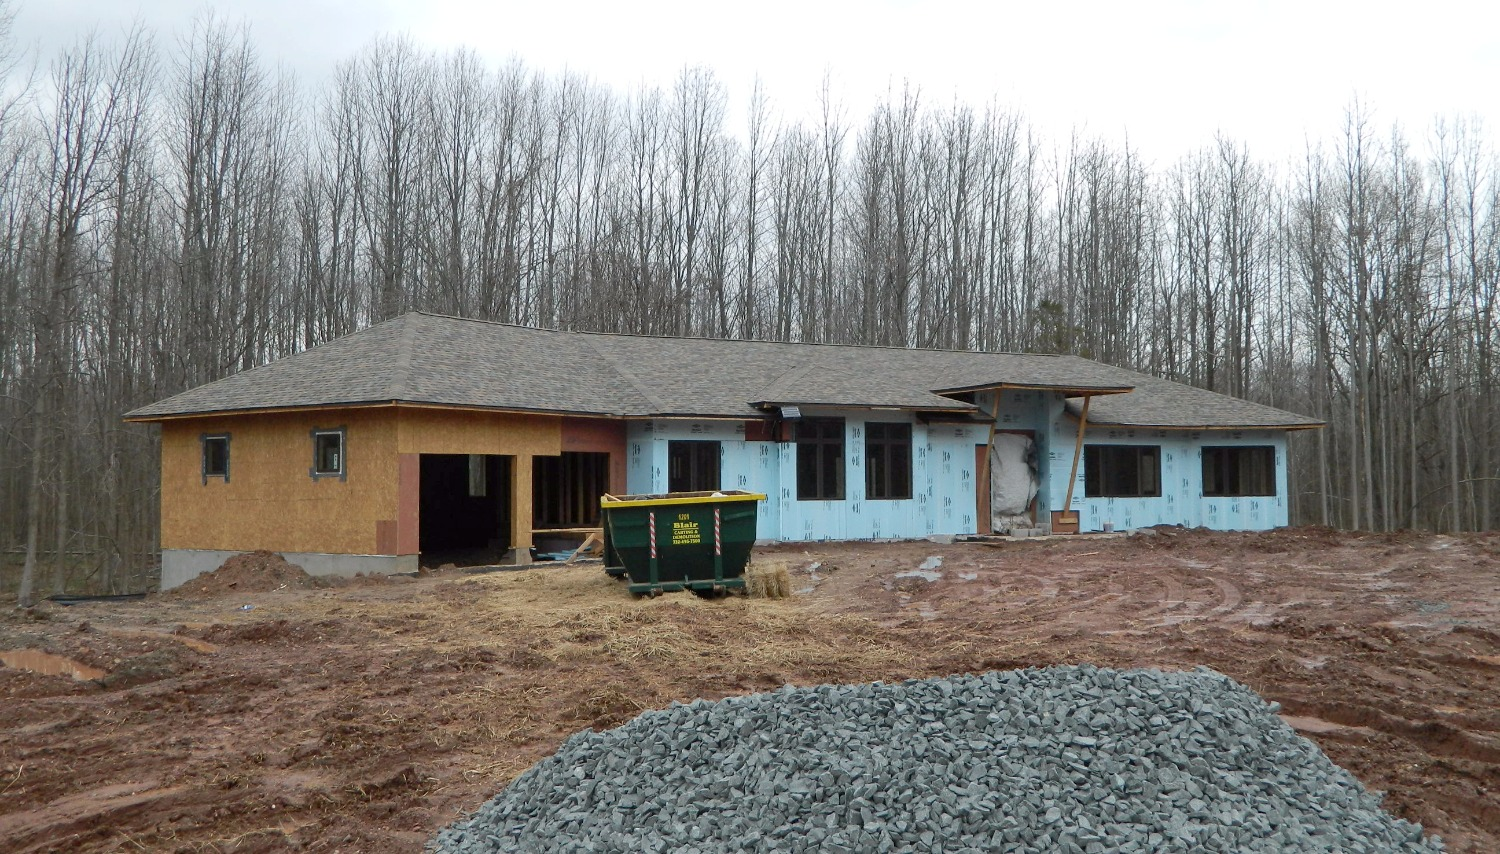 Insulated exterior